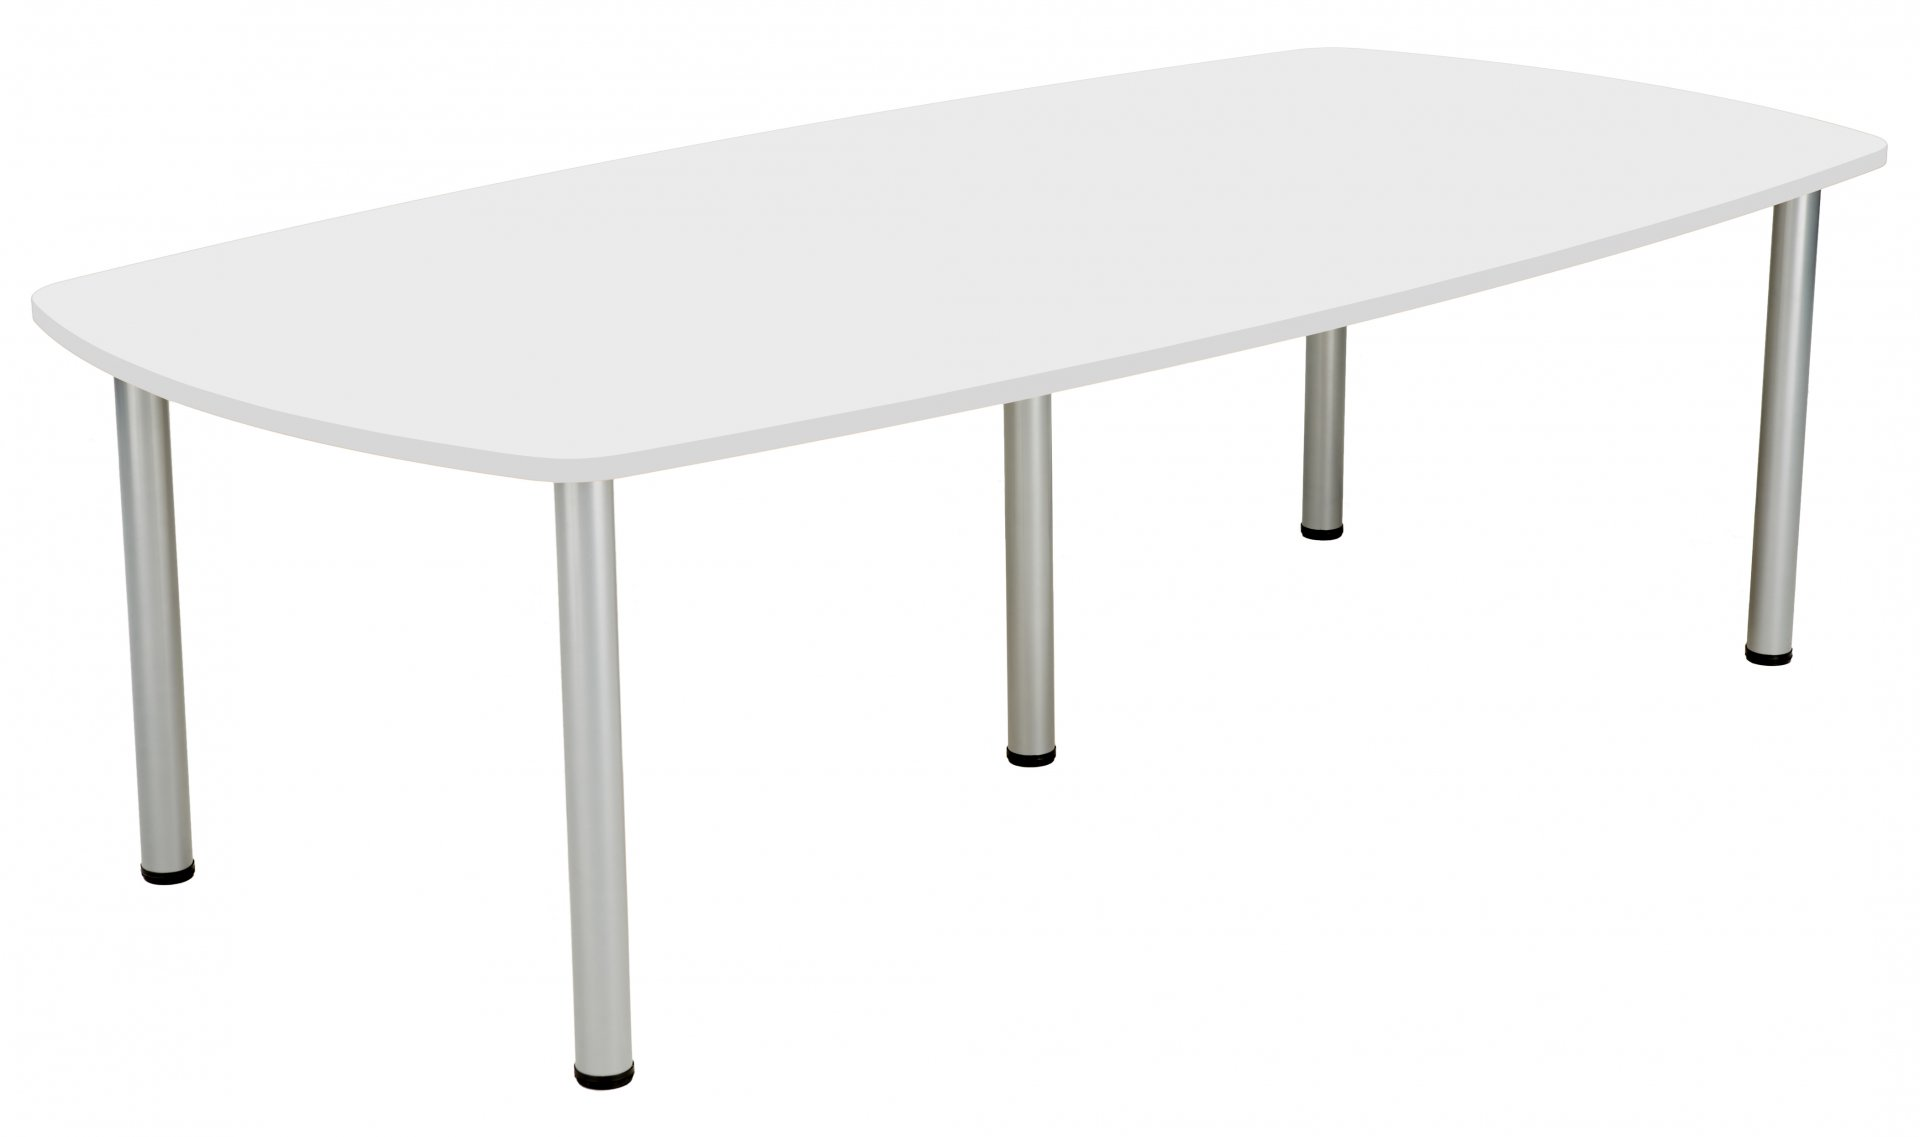 Fraction Plus 240 Boardroom Table - White